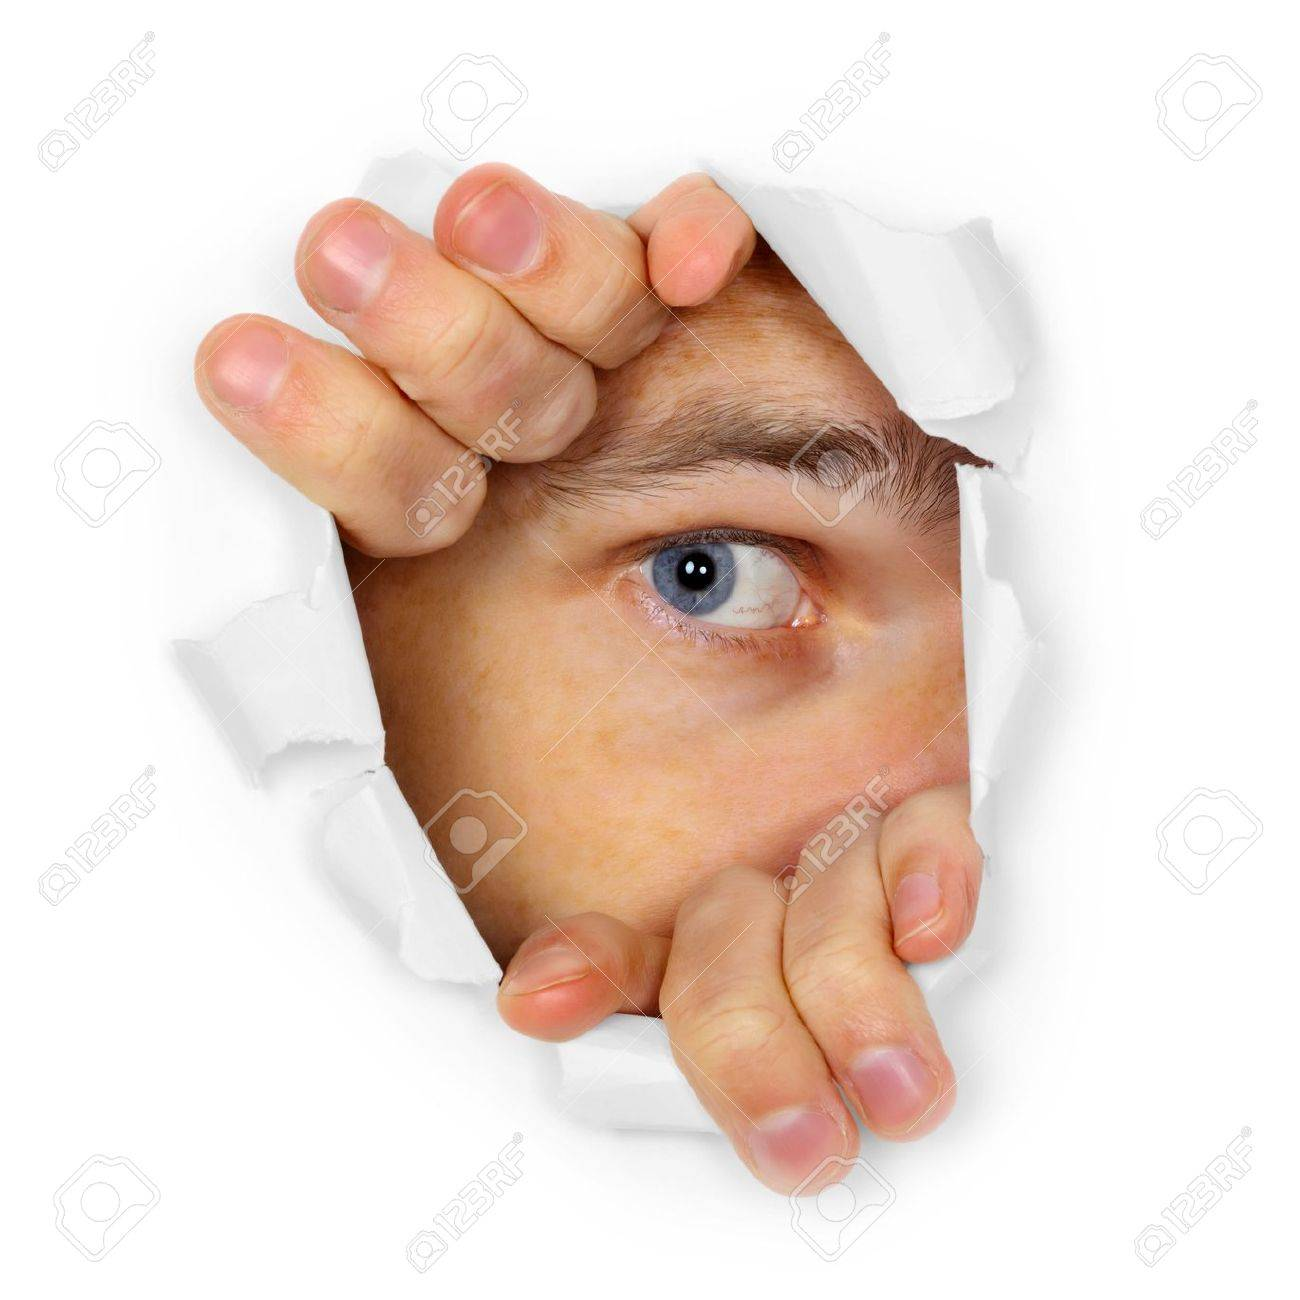 A man watches through a hole in the paper Stock Photo - 13977141